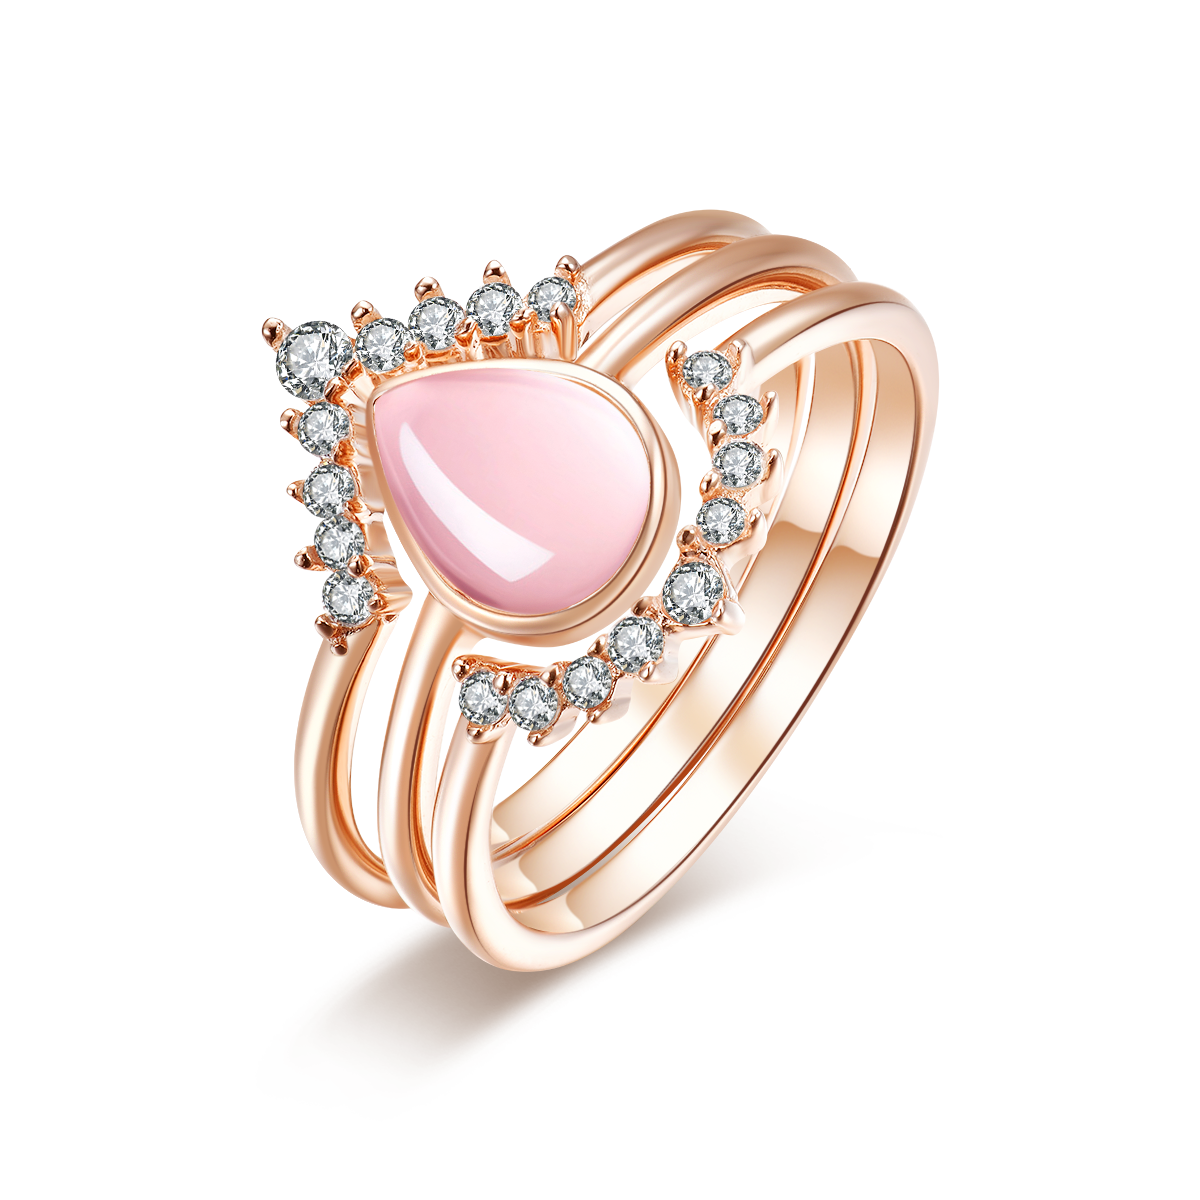 """Everafter"" Natural Rose Quartz Oval-Cut Sterling Silver Three-Piece Stackable Ring Set in Rose Gold"